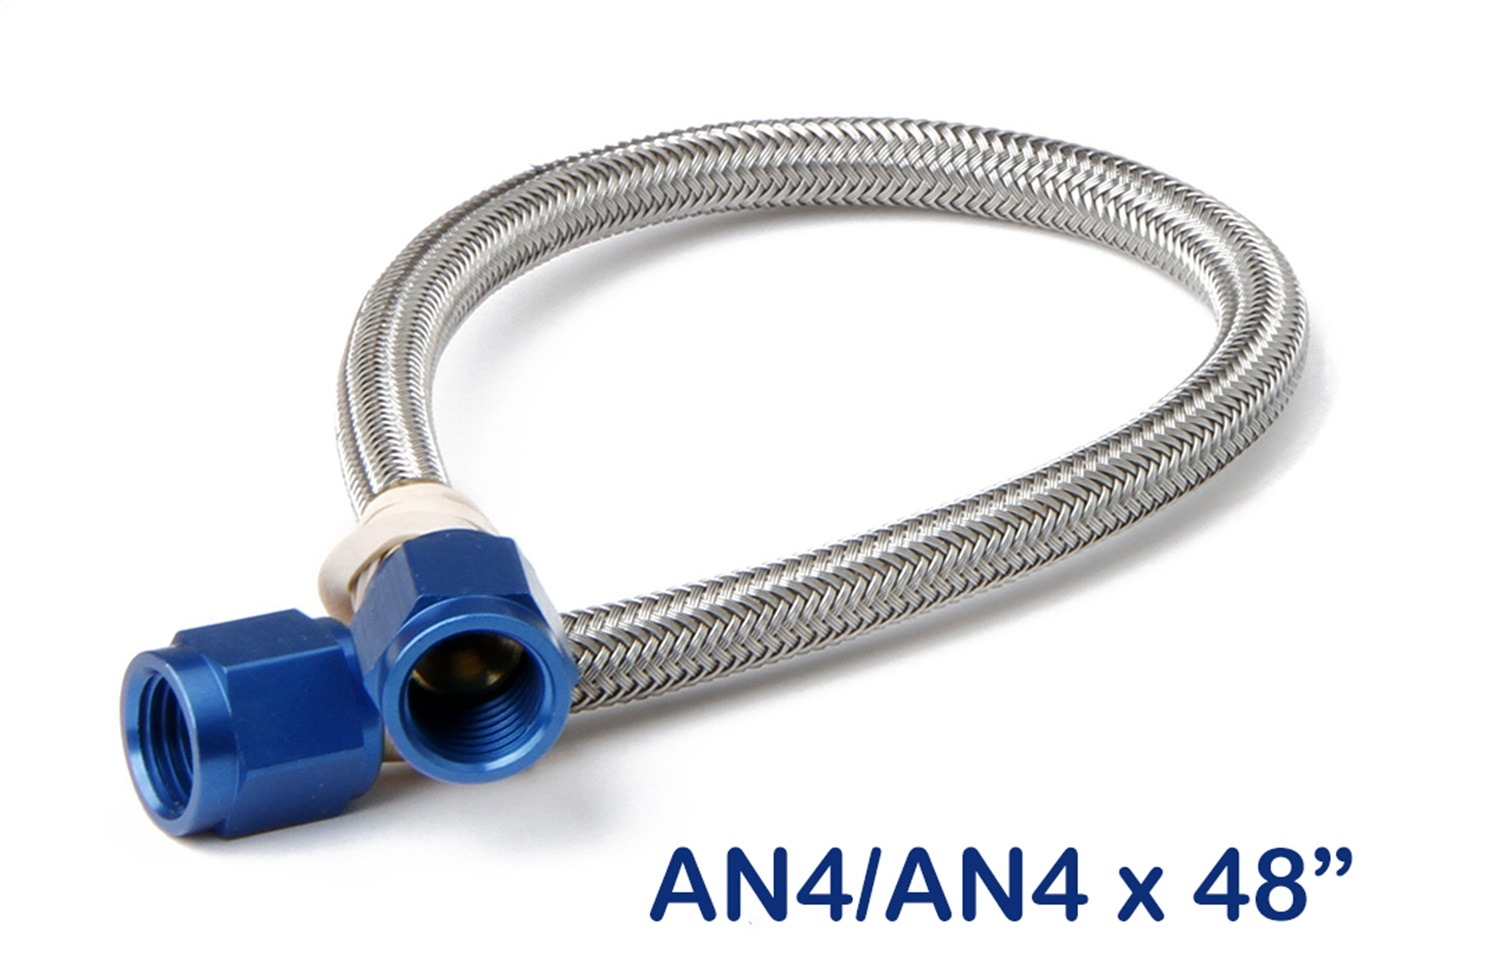 NOS 15250NOS Stainless Steel Braided Hose